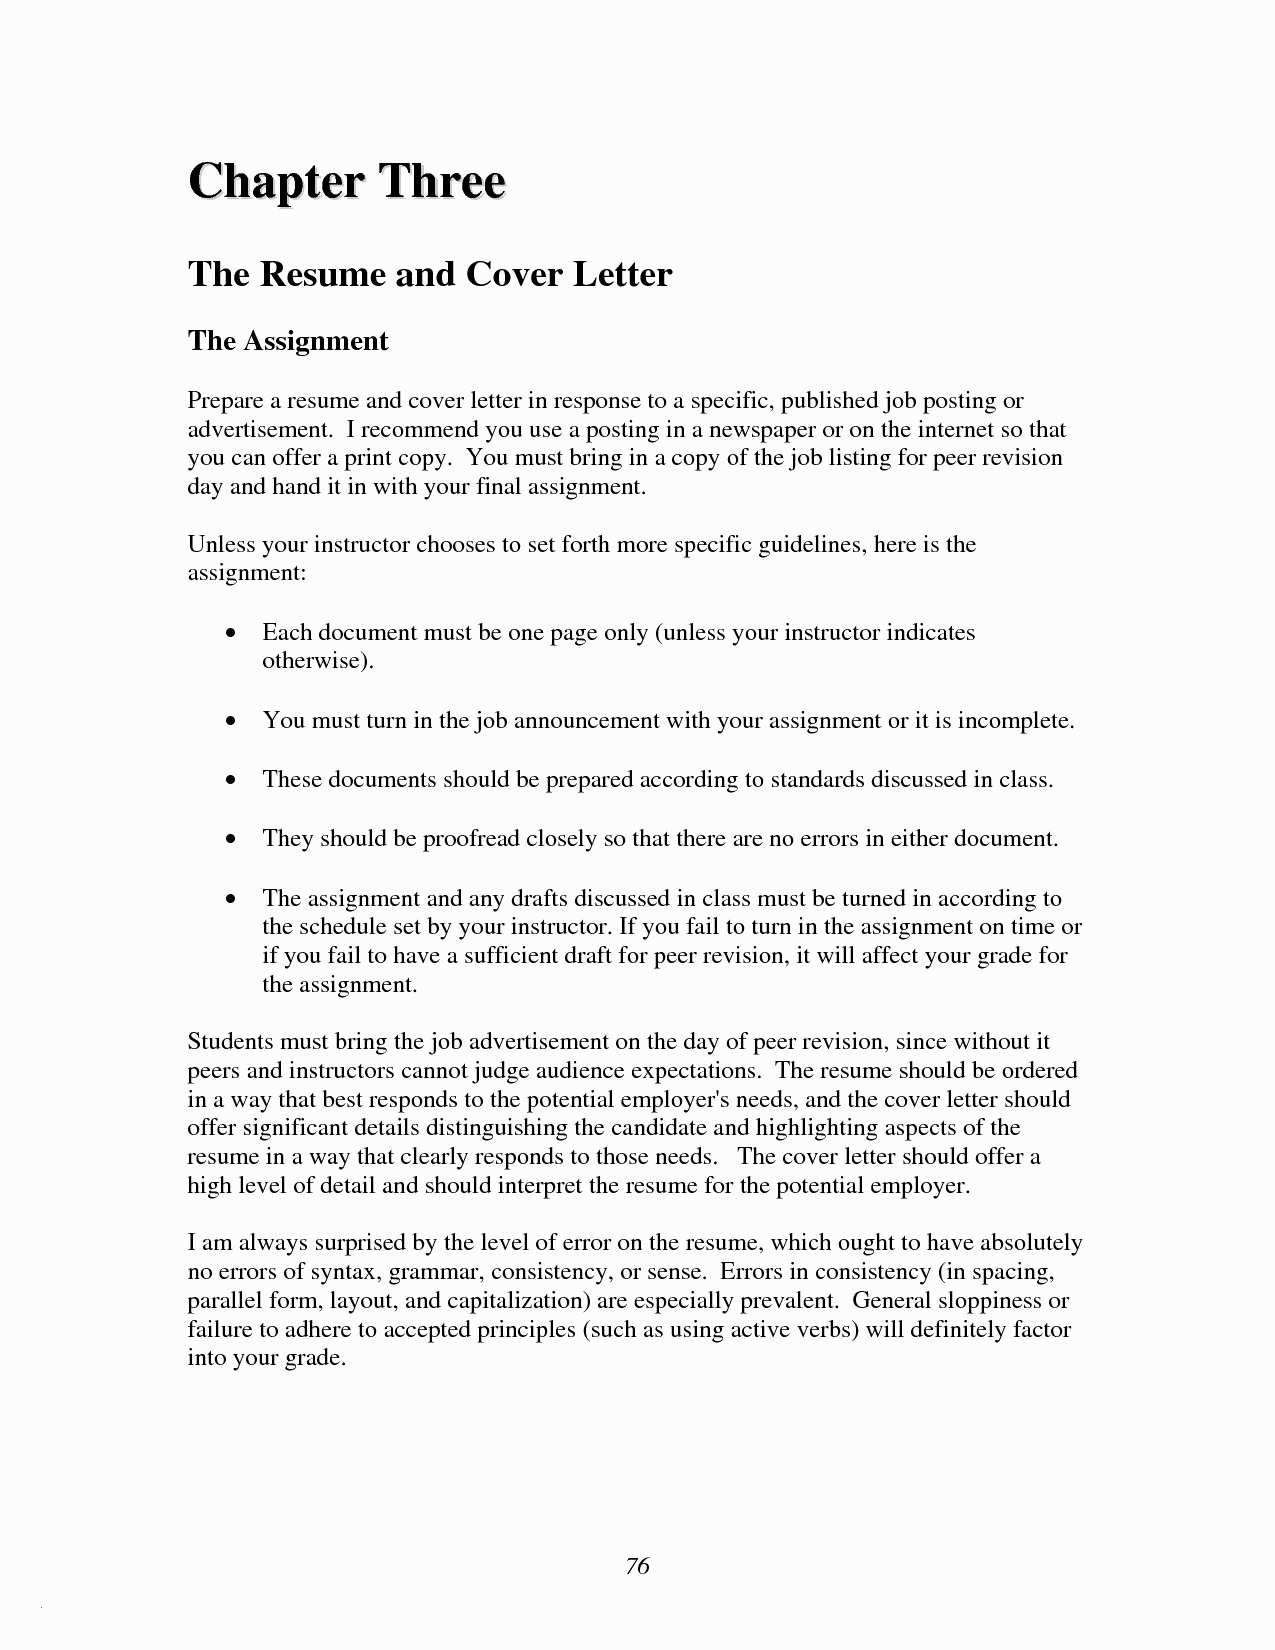 Bond Claim Letter Template - Awesome Performance Bond Letter